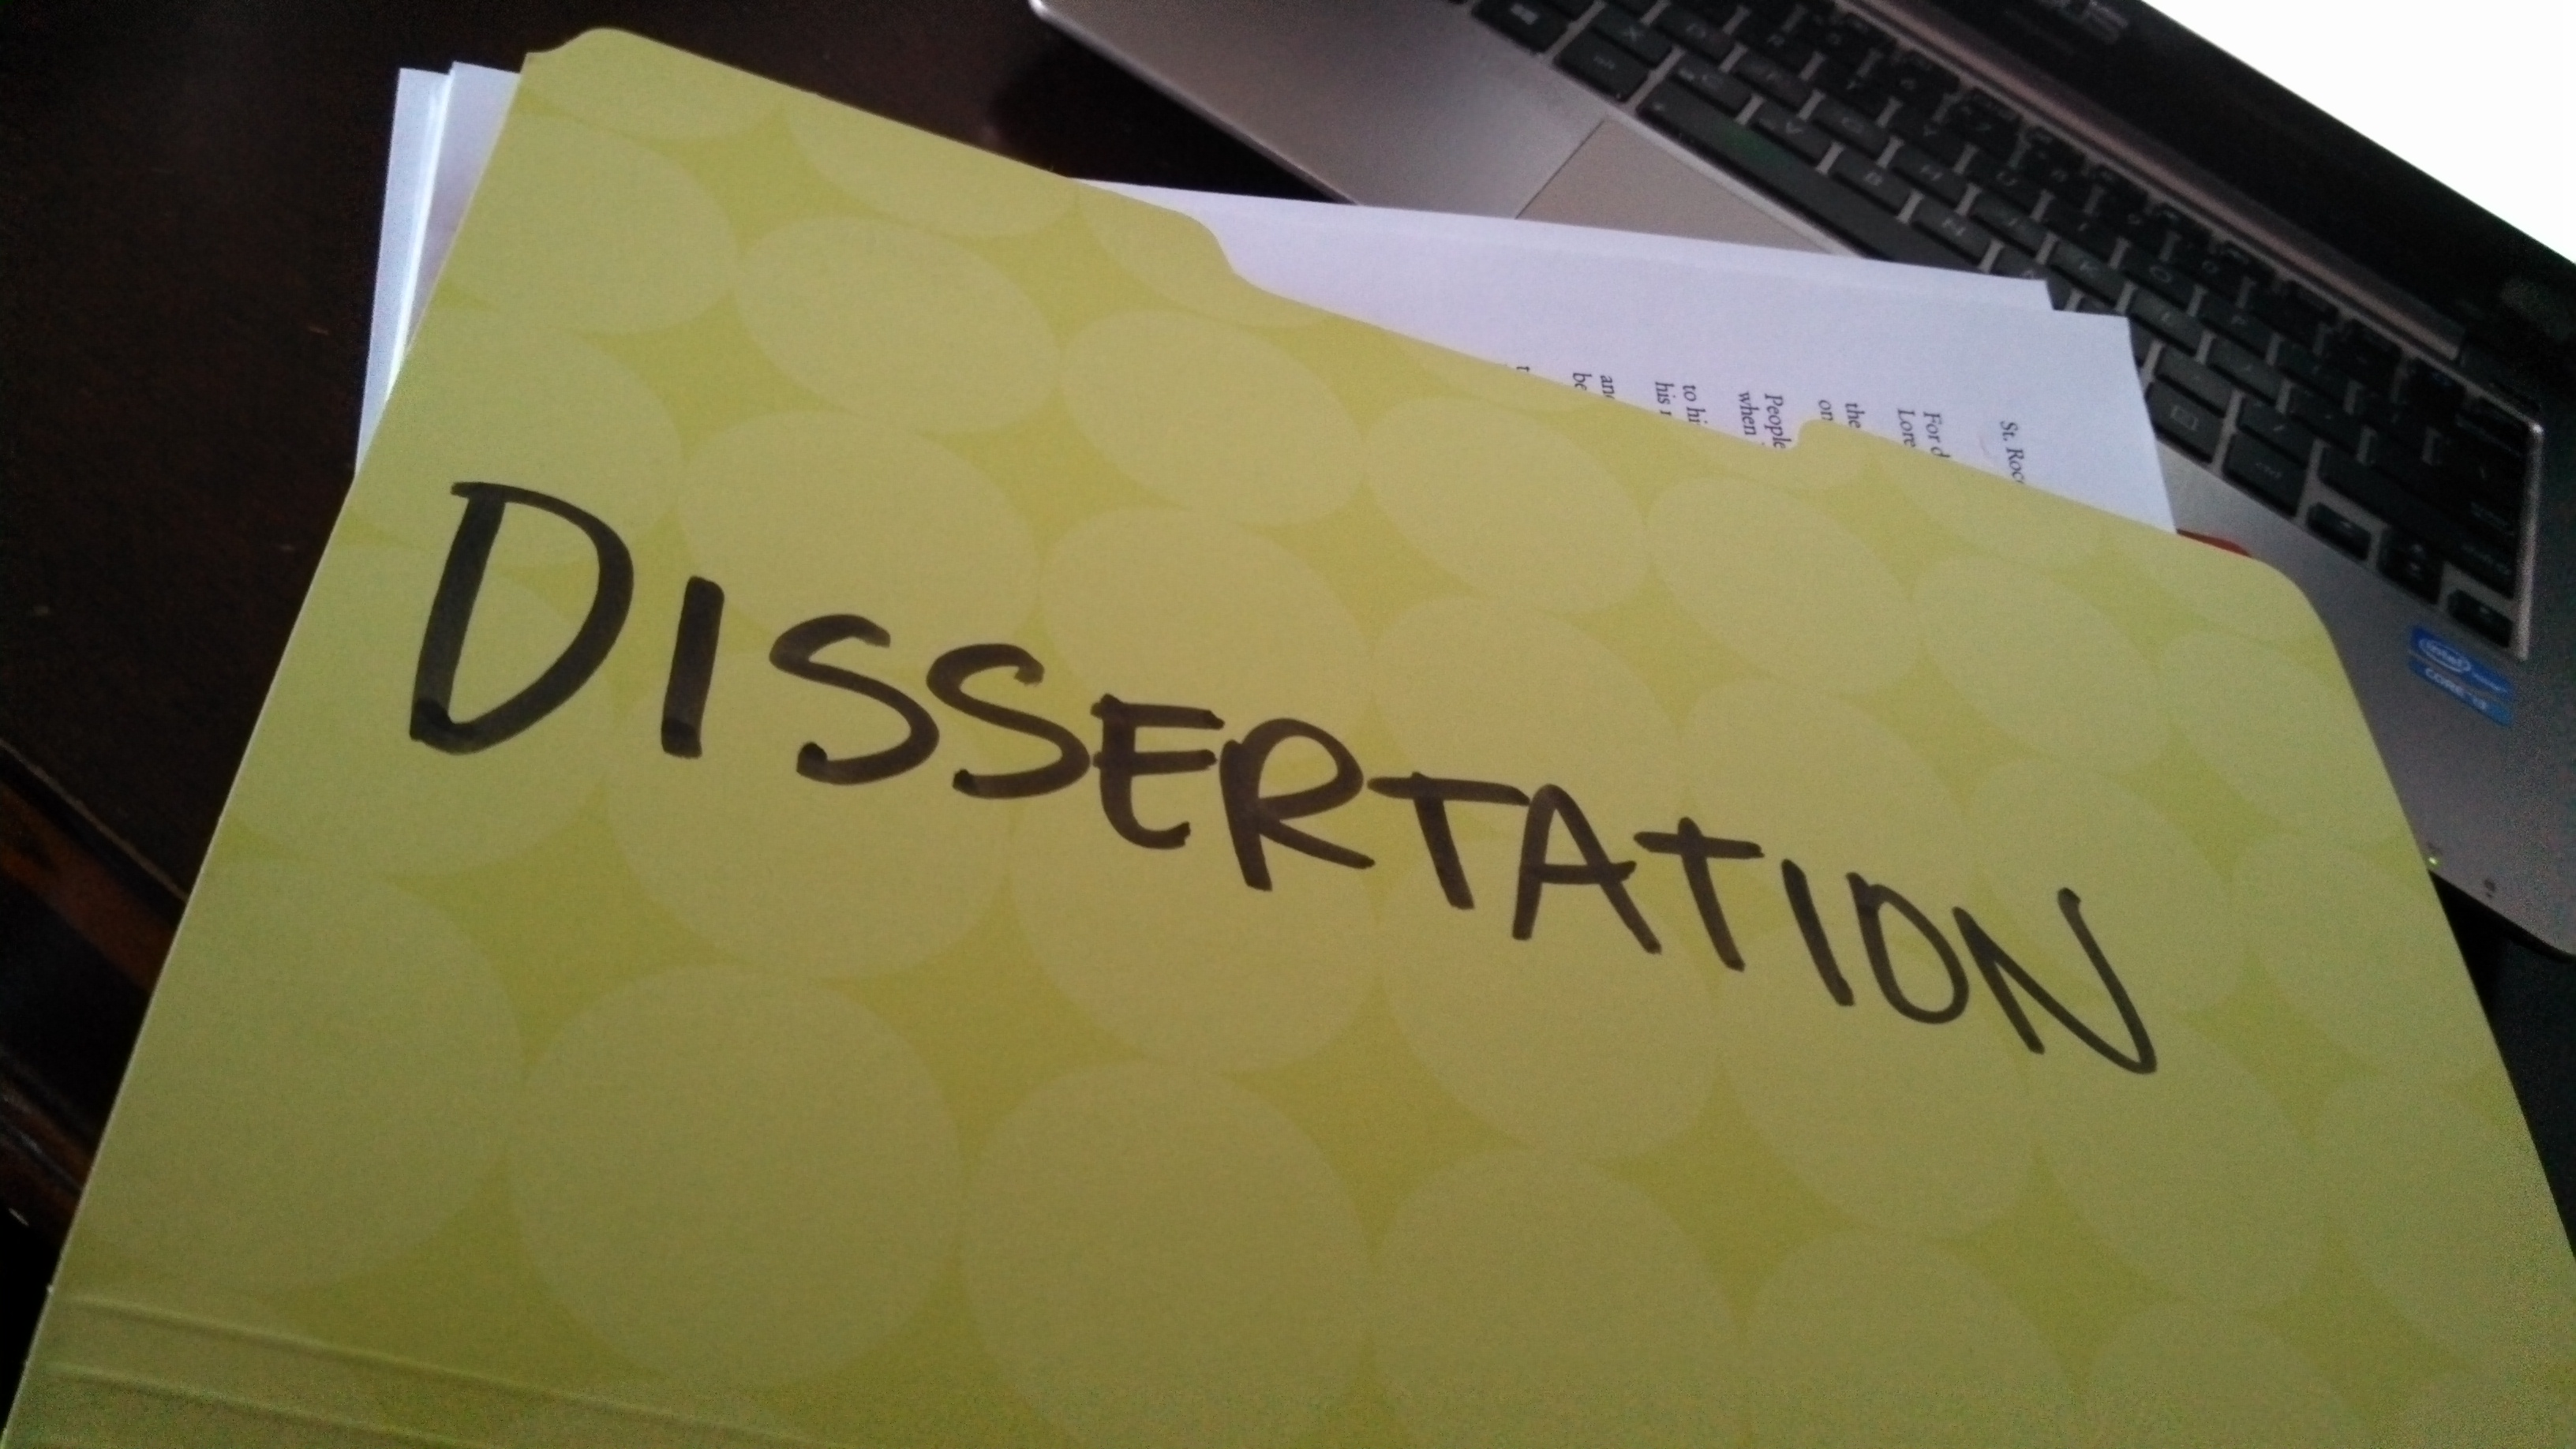 dissertation documents